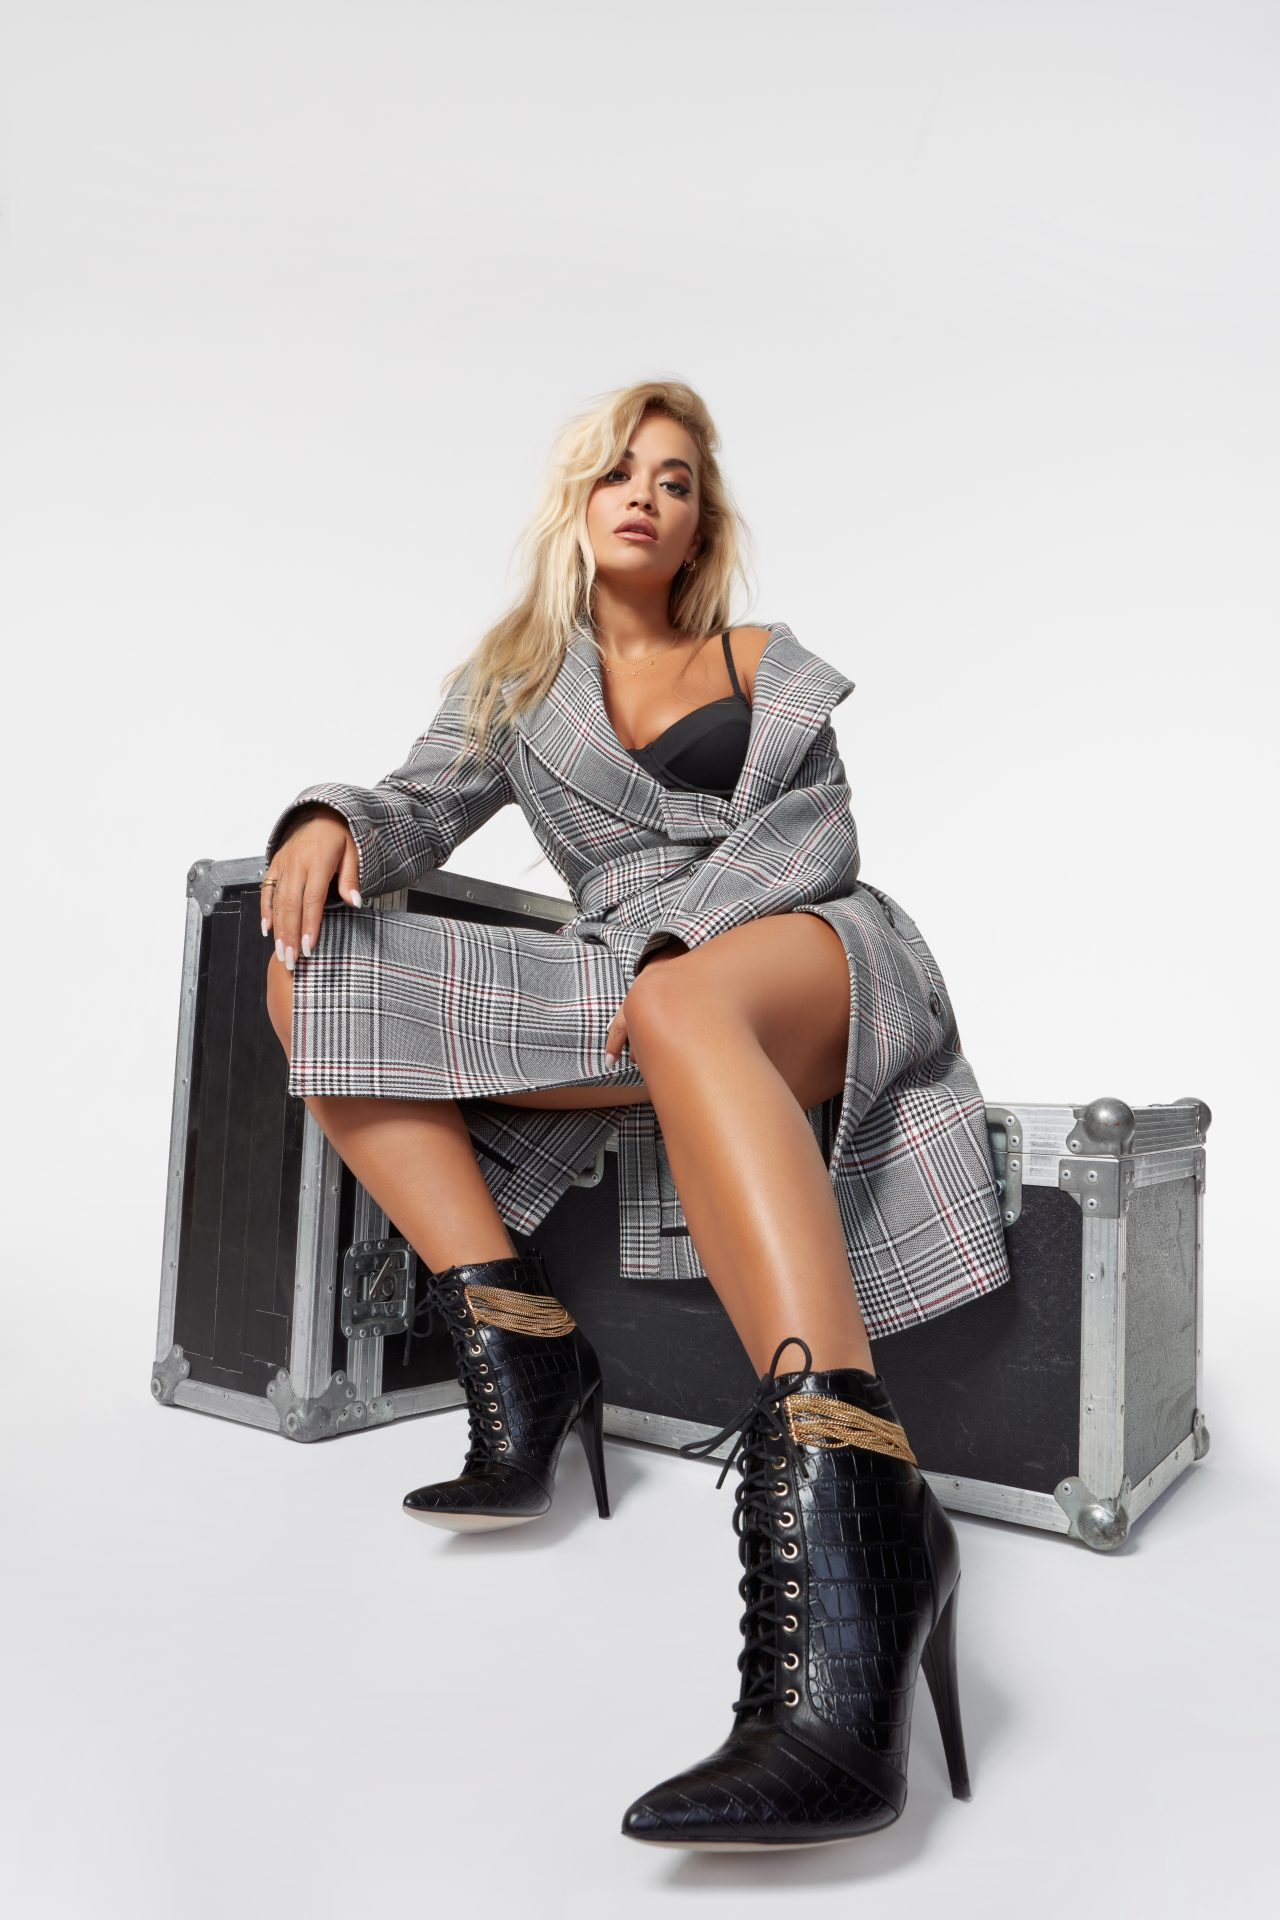 Rita Ora Drops New Shoe Collab With ShoeDazzle